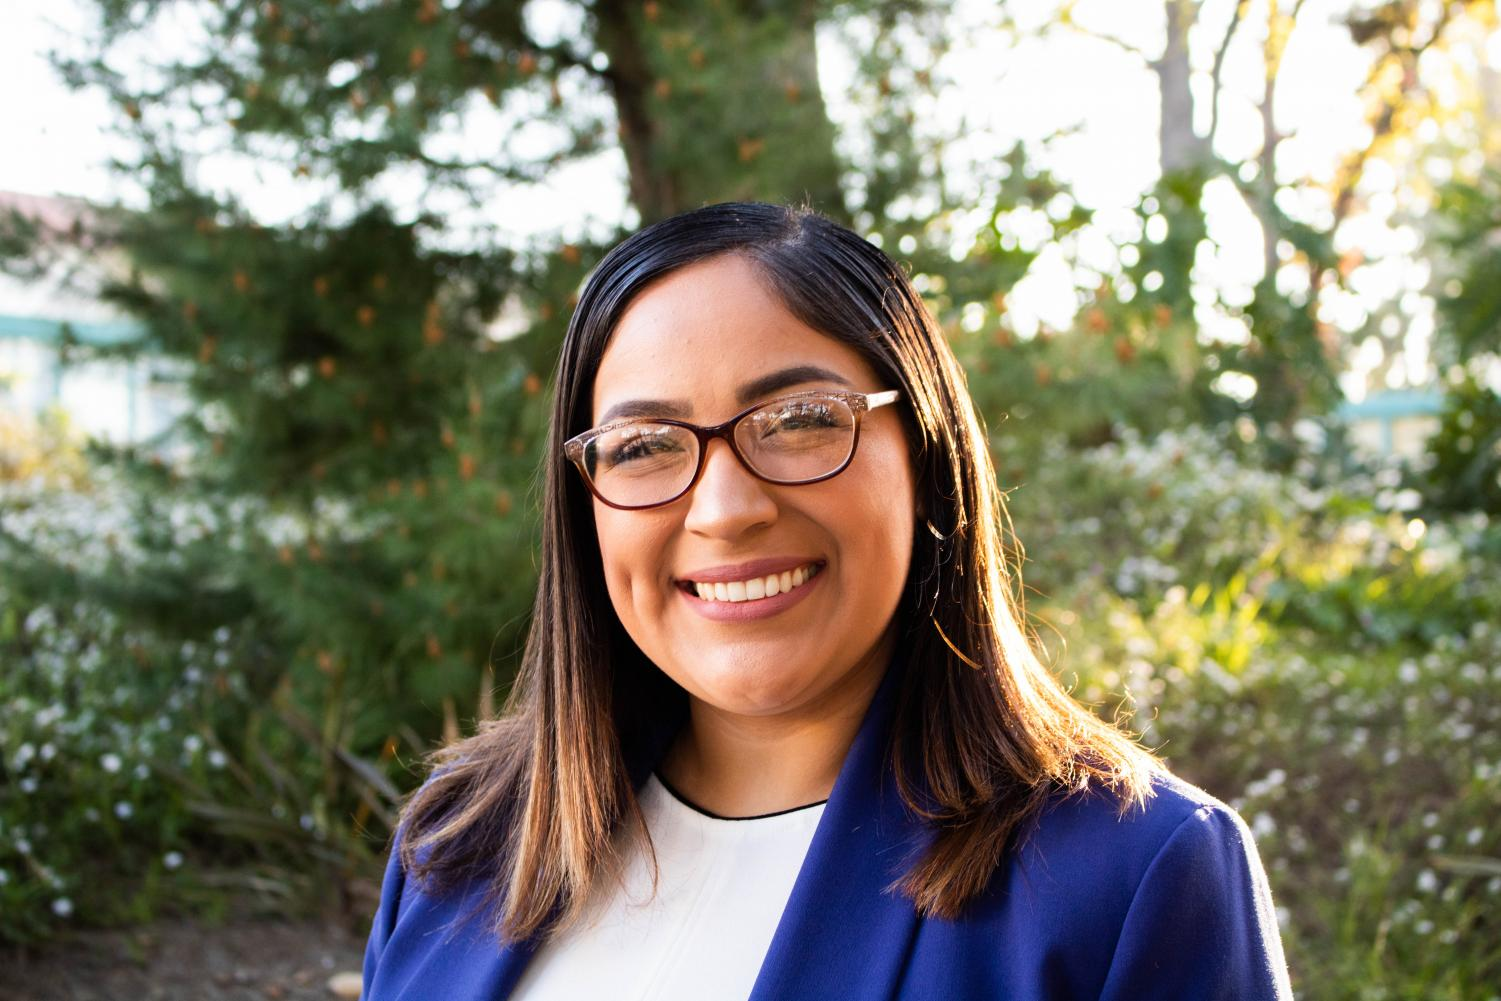 A.S. Vice President of External Relations Angelica Espinoza is the first Latina executive to serve at SDSU in 15 years.